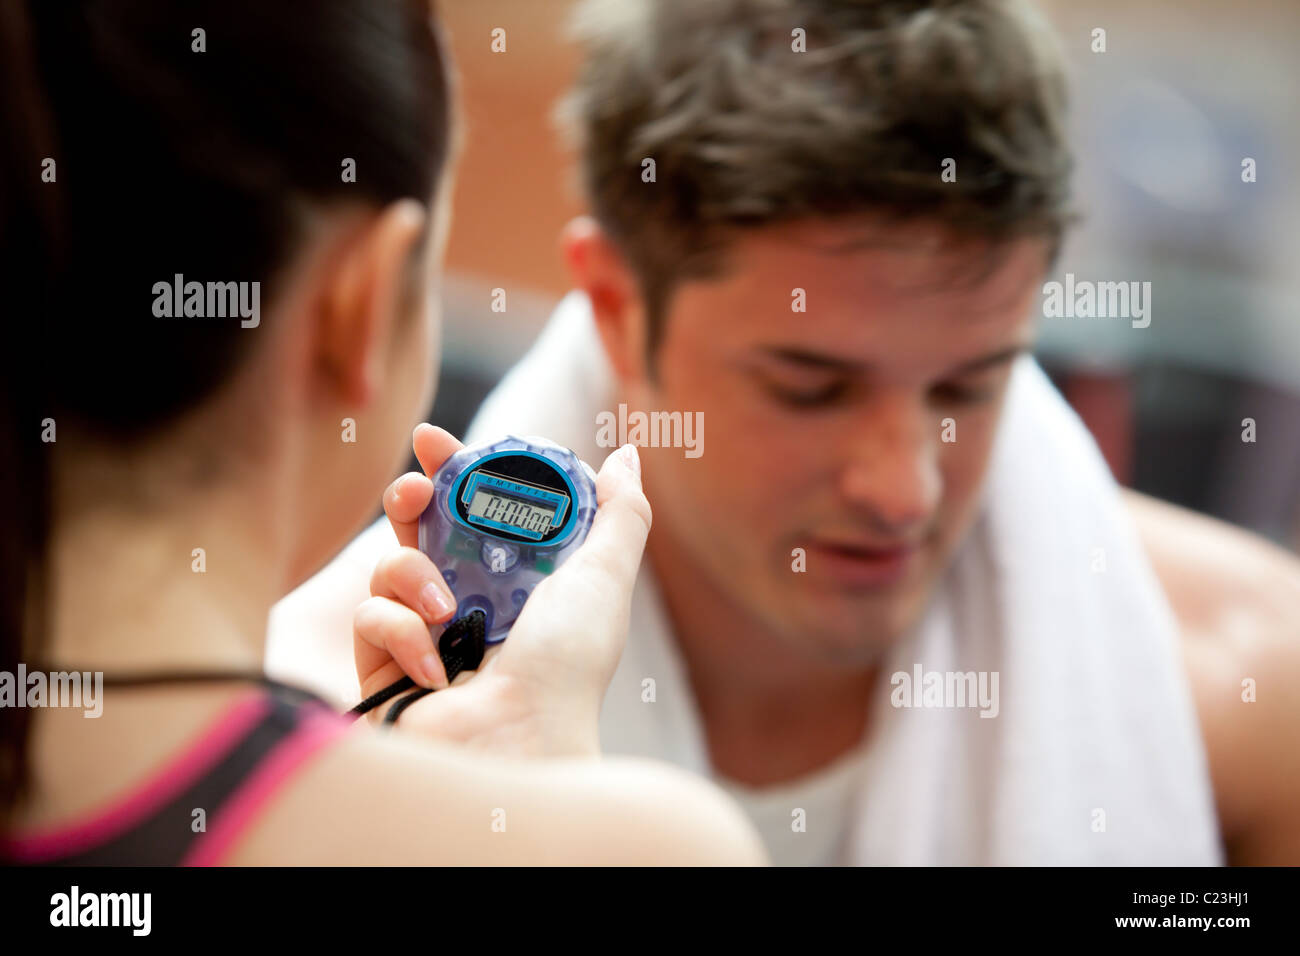 Female trainer holding a chronometer while man doing physical exercise - Stock Image